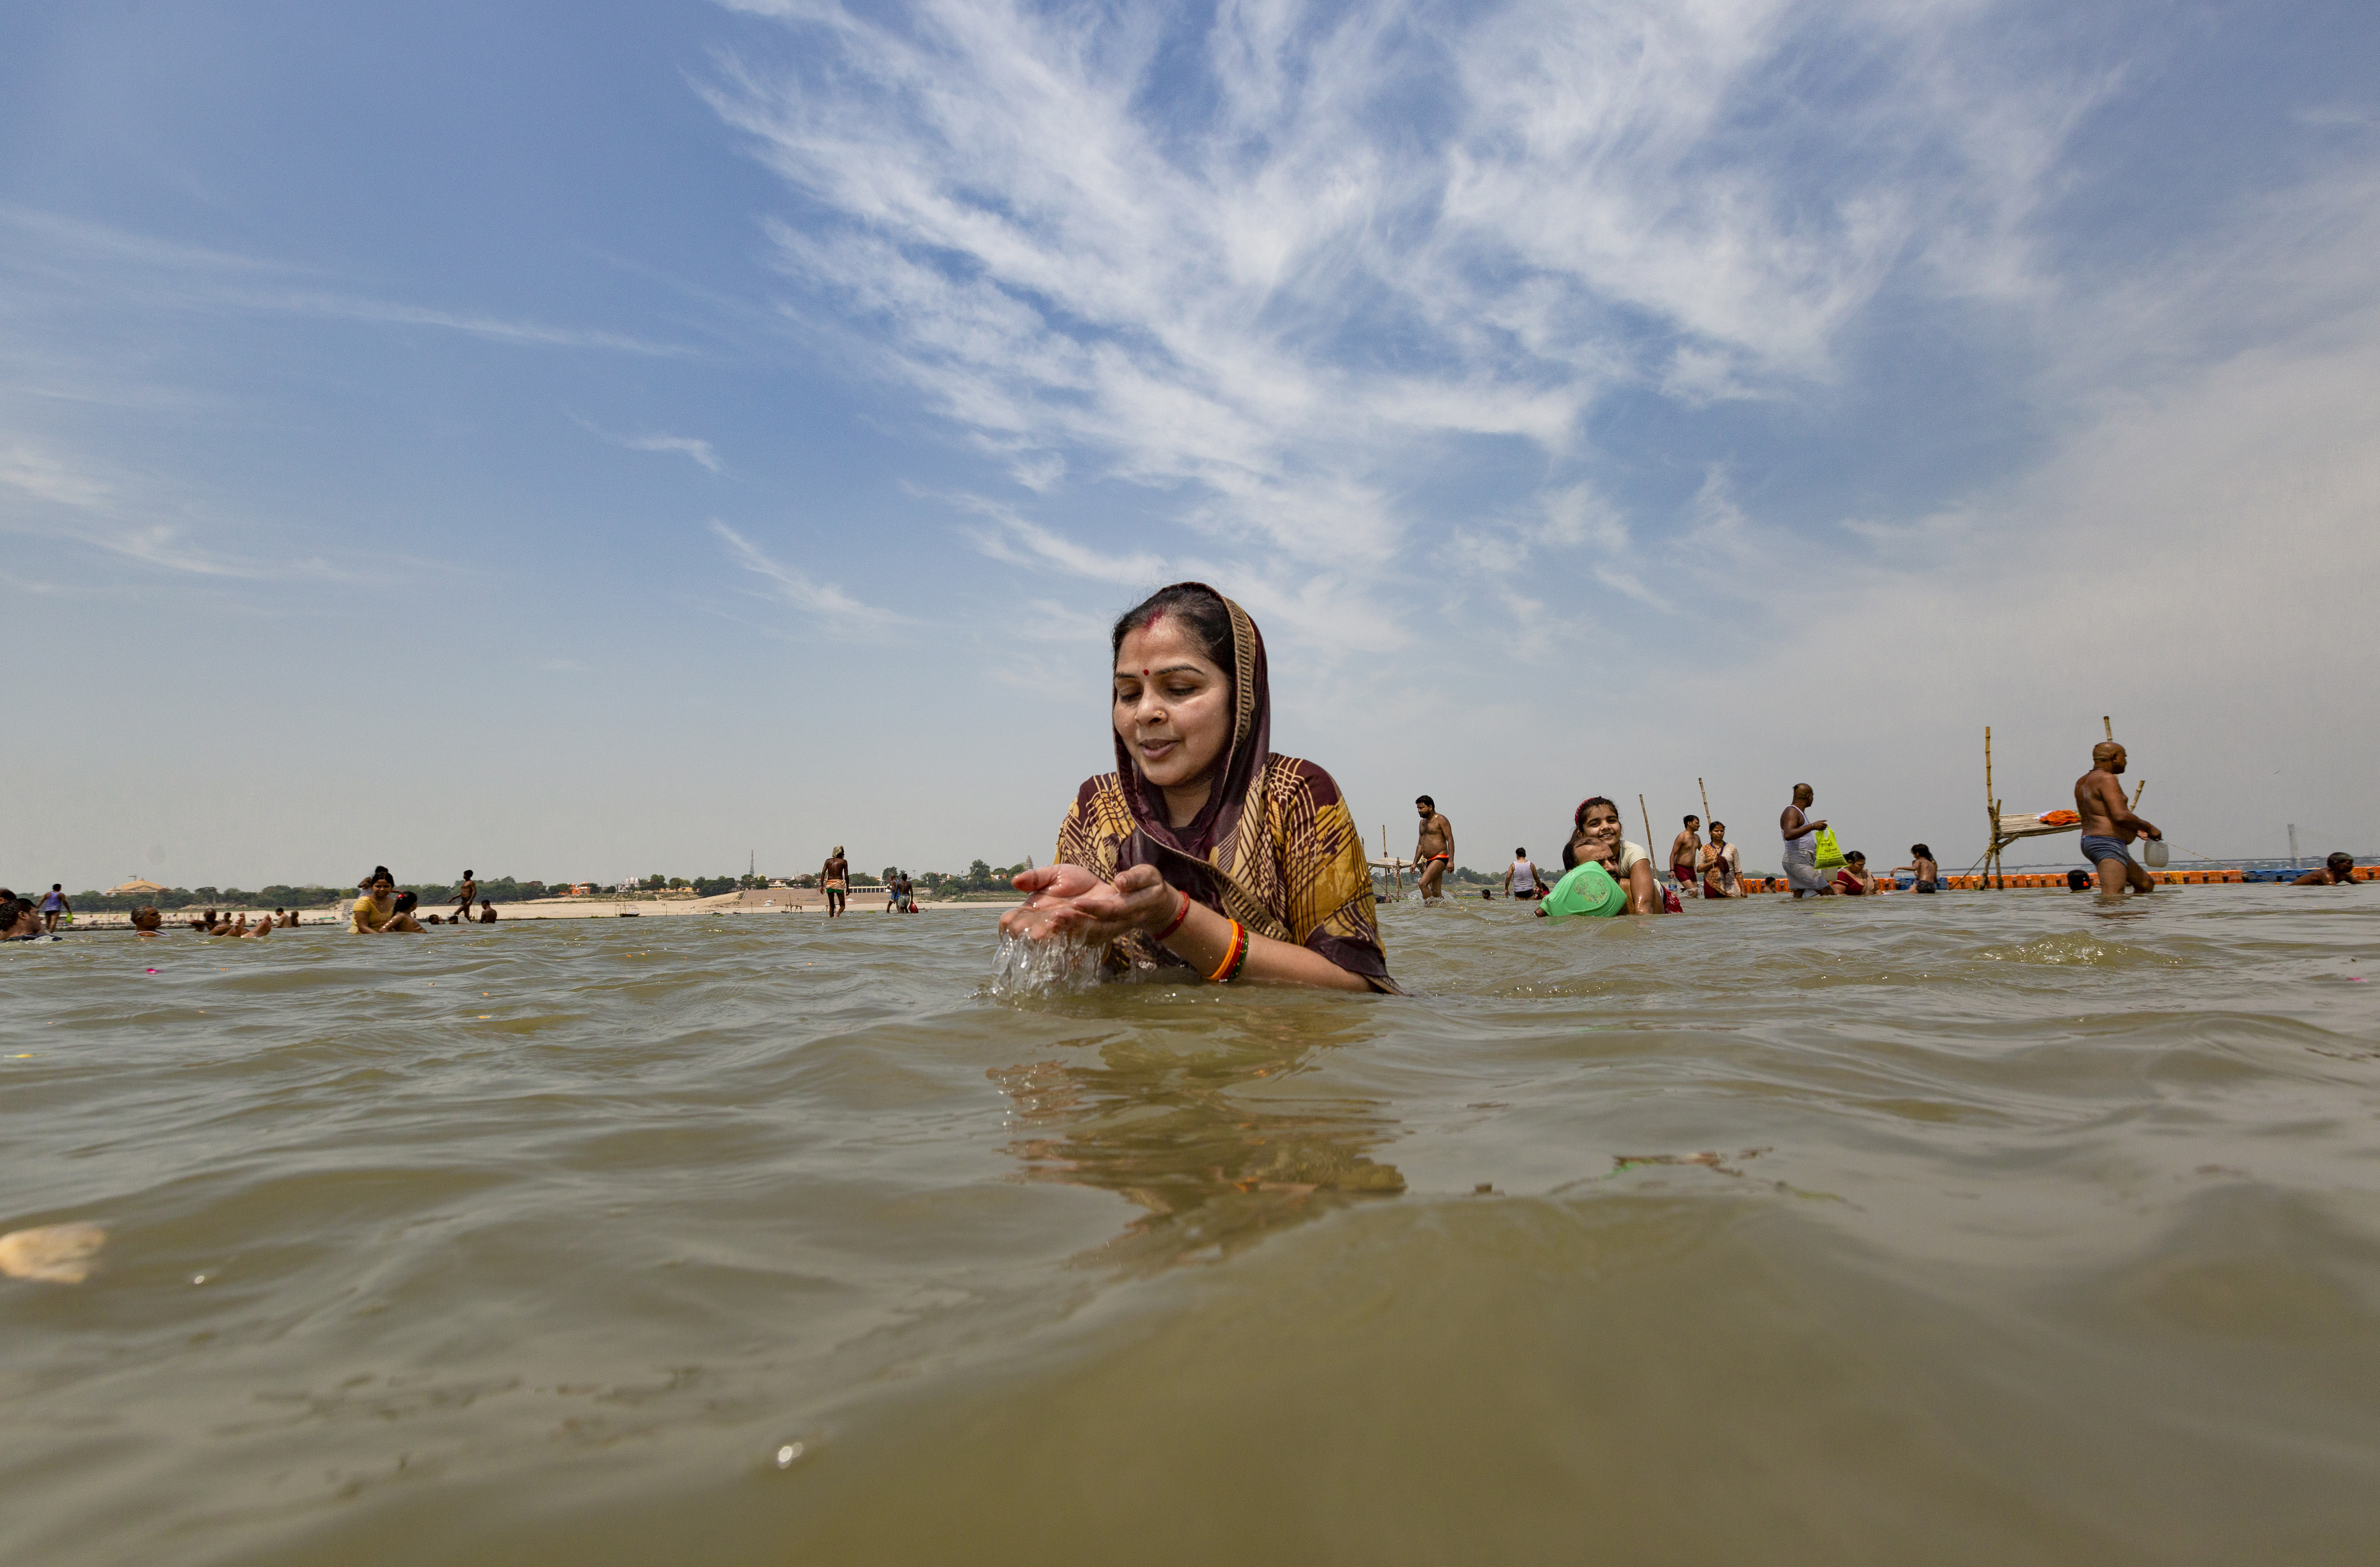 A Hindu devotee offers prayers in the River Ganges, during the Ganga Dussehra festival, in Prayagraj, India, Monday, June 1, 2020. Hundreds of Hindu devotees made holy dips here Monday even though congregations at religious venues continue to remain barred during the nationwide coronavirus lockdown. (AP Photo/Rajesh Kumar Singh)